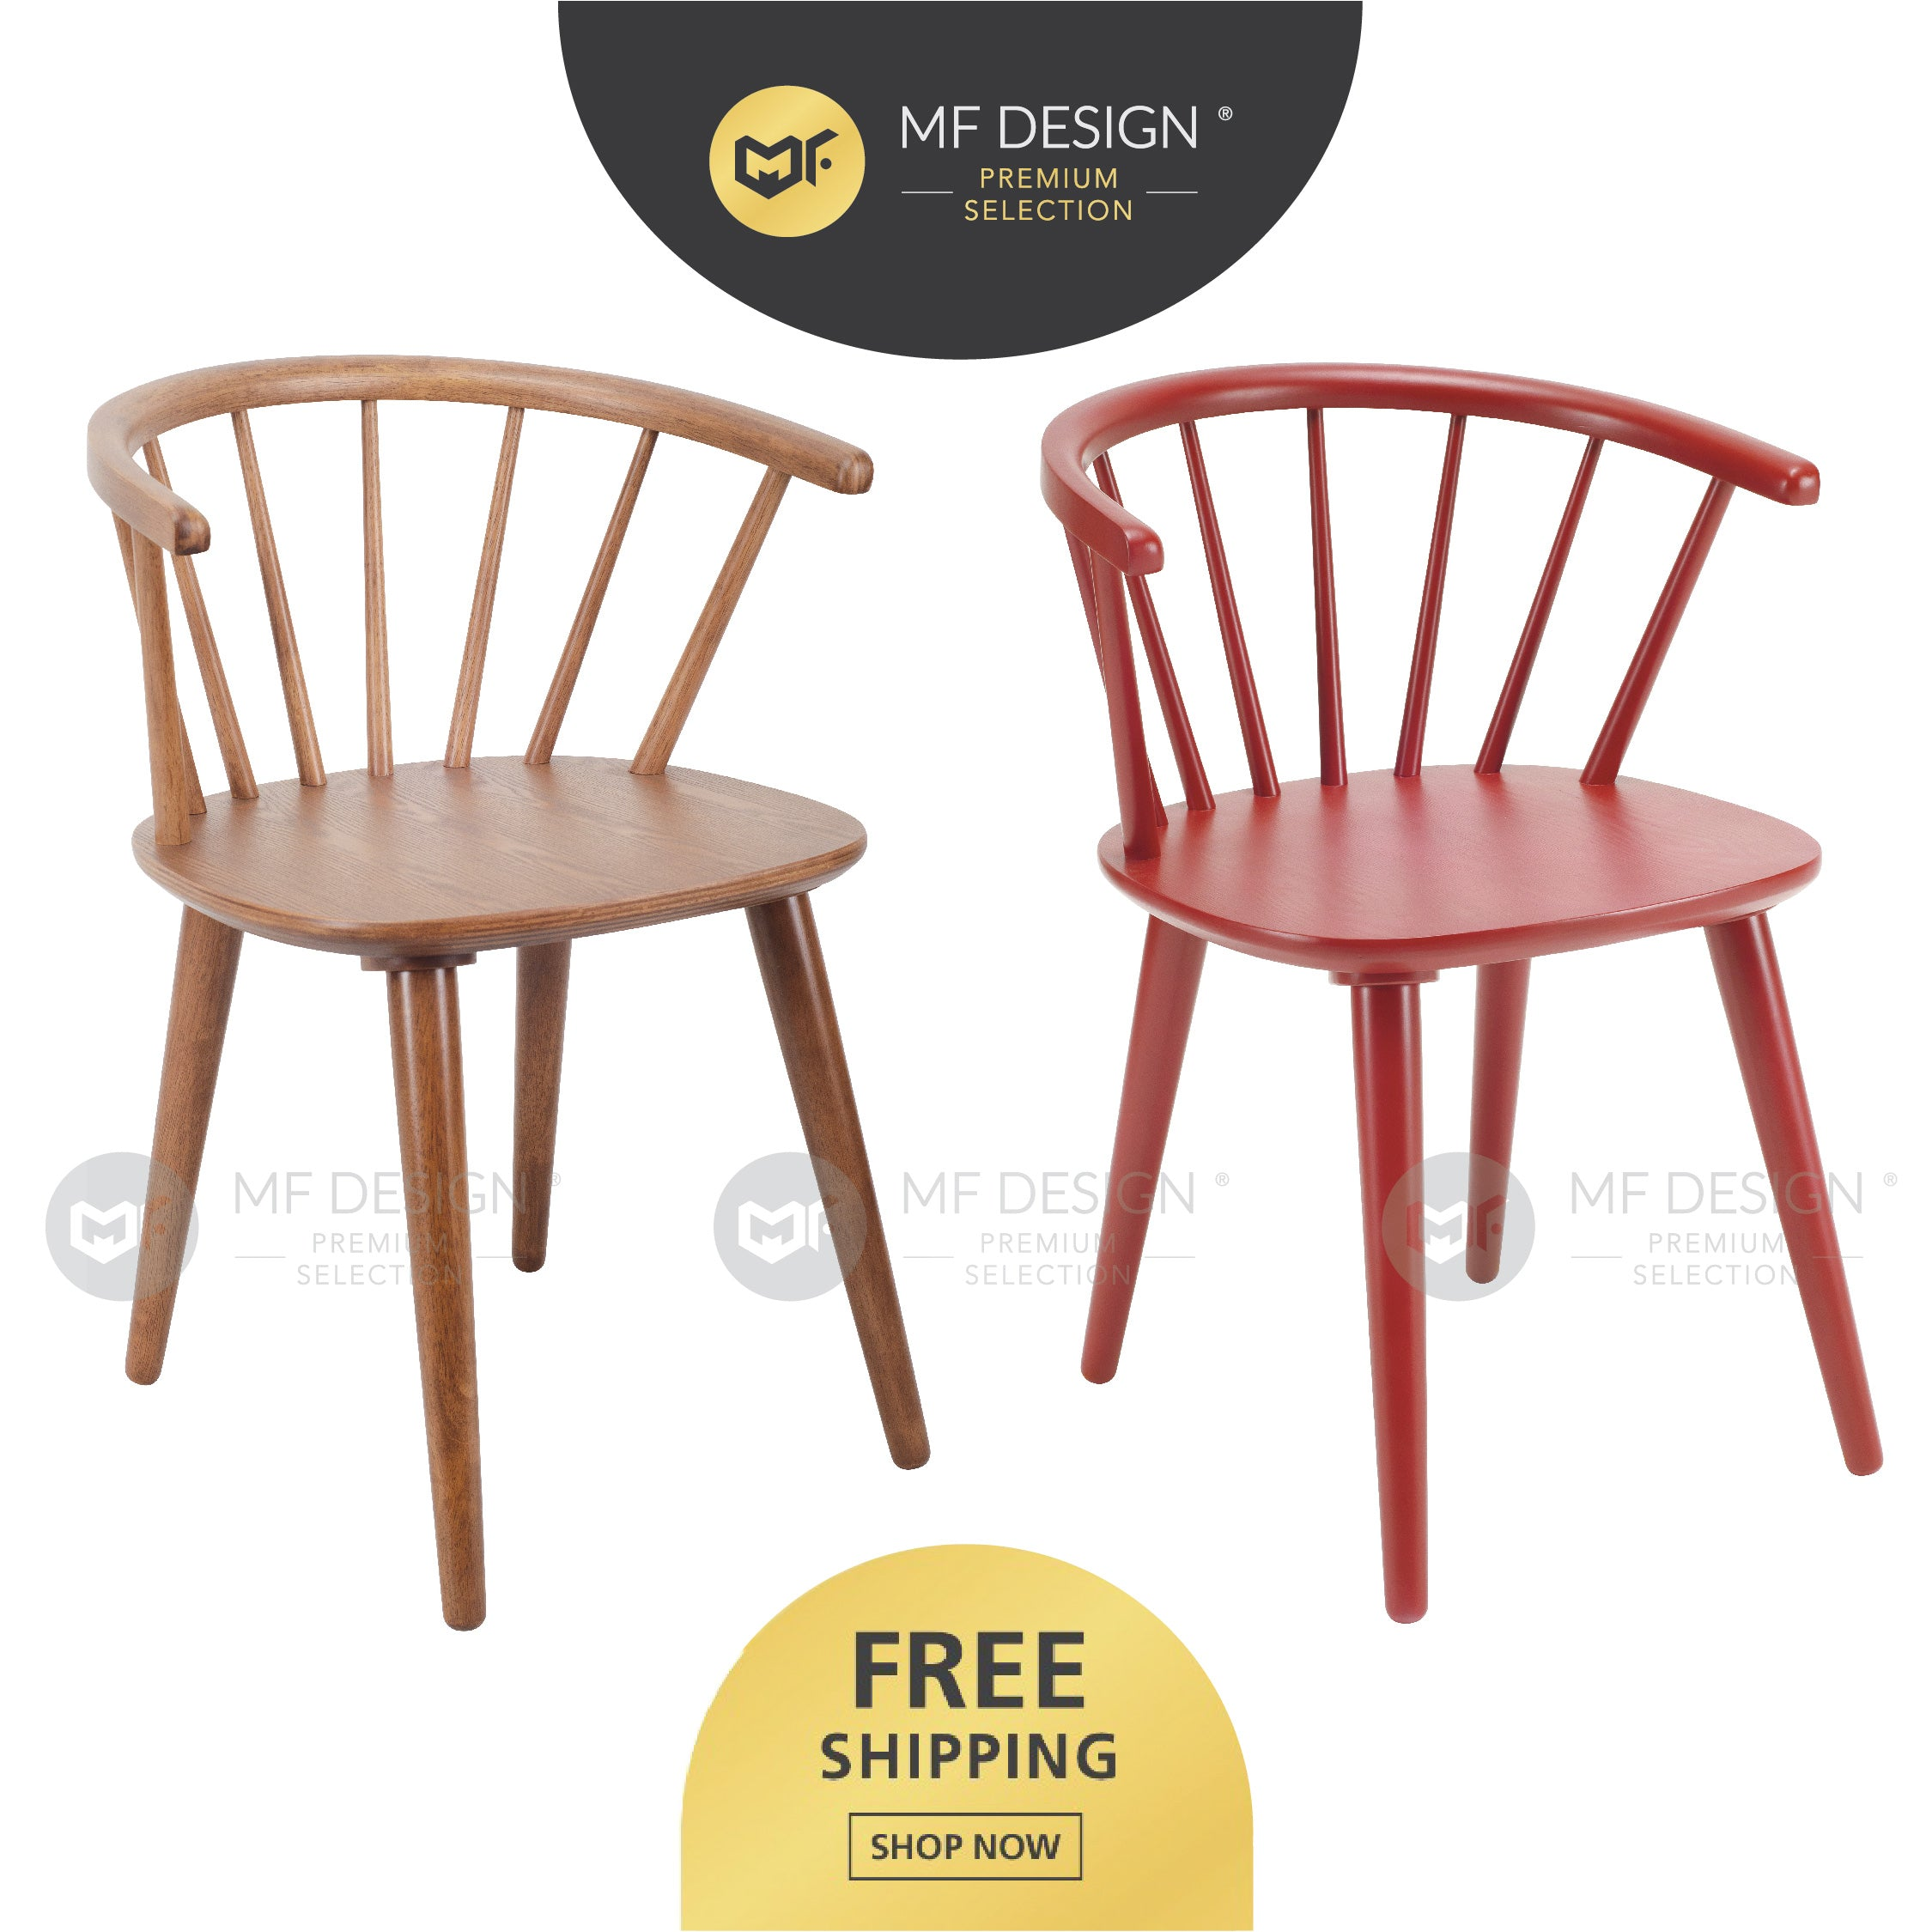 MFD Premium Catherine Dining Chair / Wooden Chair / Solid Rubber Wood / Kerusi Makan Kayu Getah / Living Room